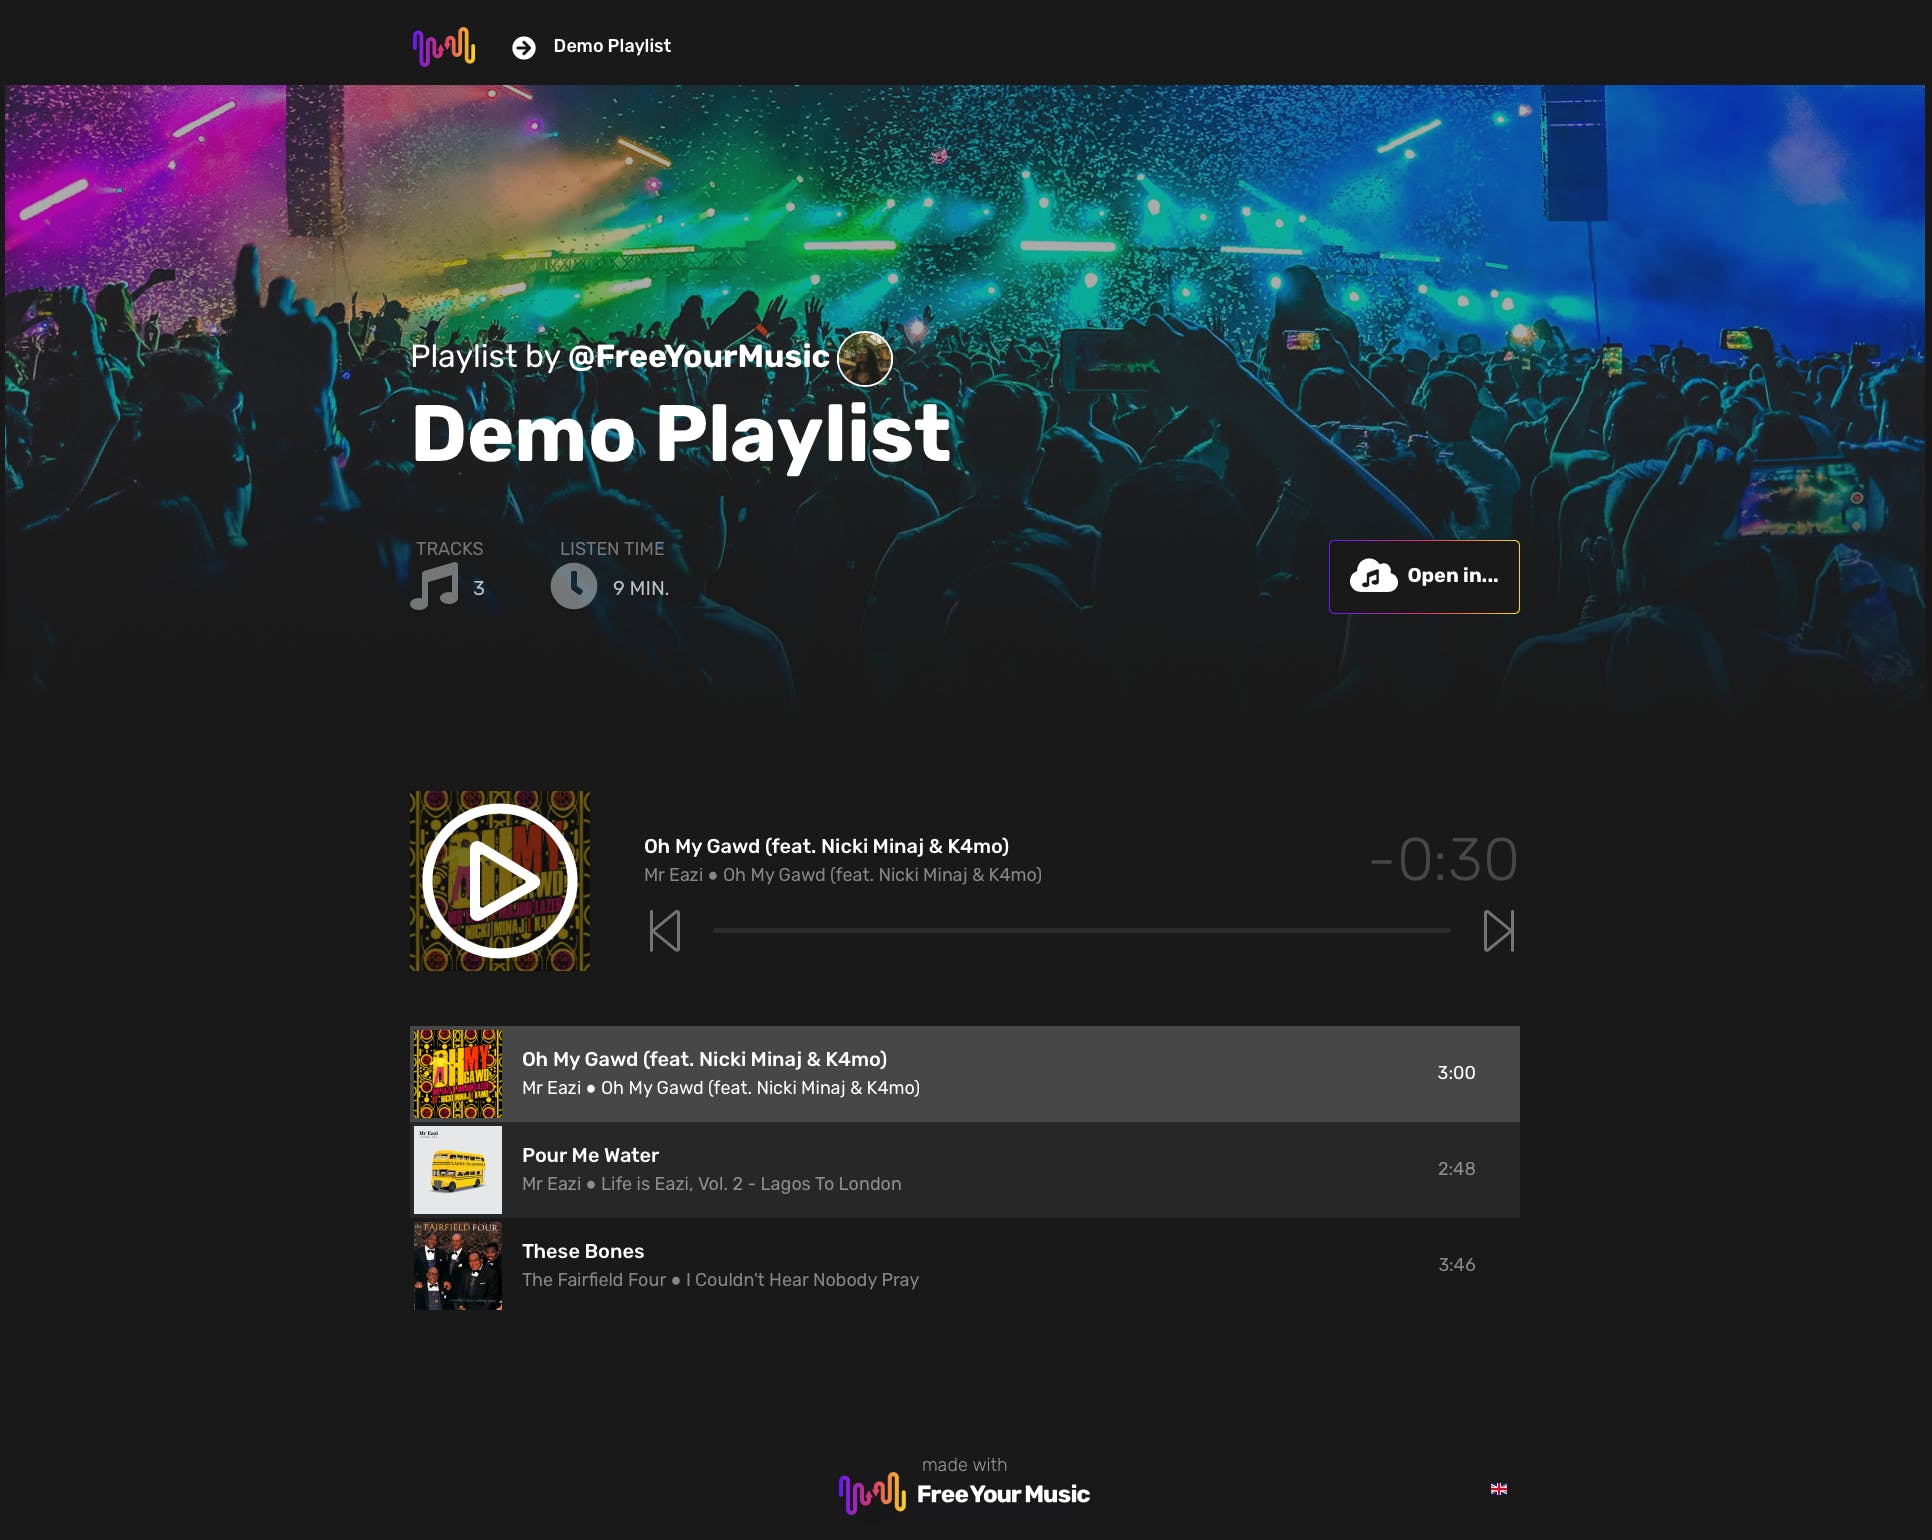 Promote your music on all streaming platforms with a single smart link. Direct fans to a sleek landing page that allows them to open your playlists in their favorite music streaming app.